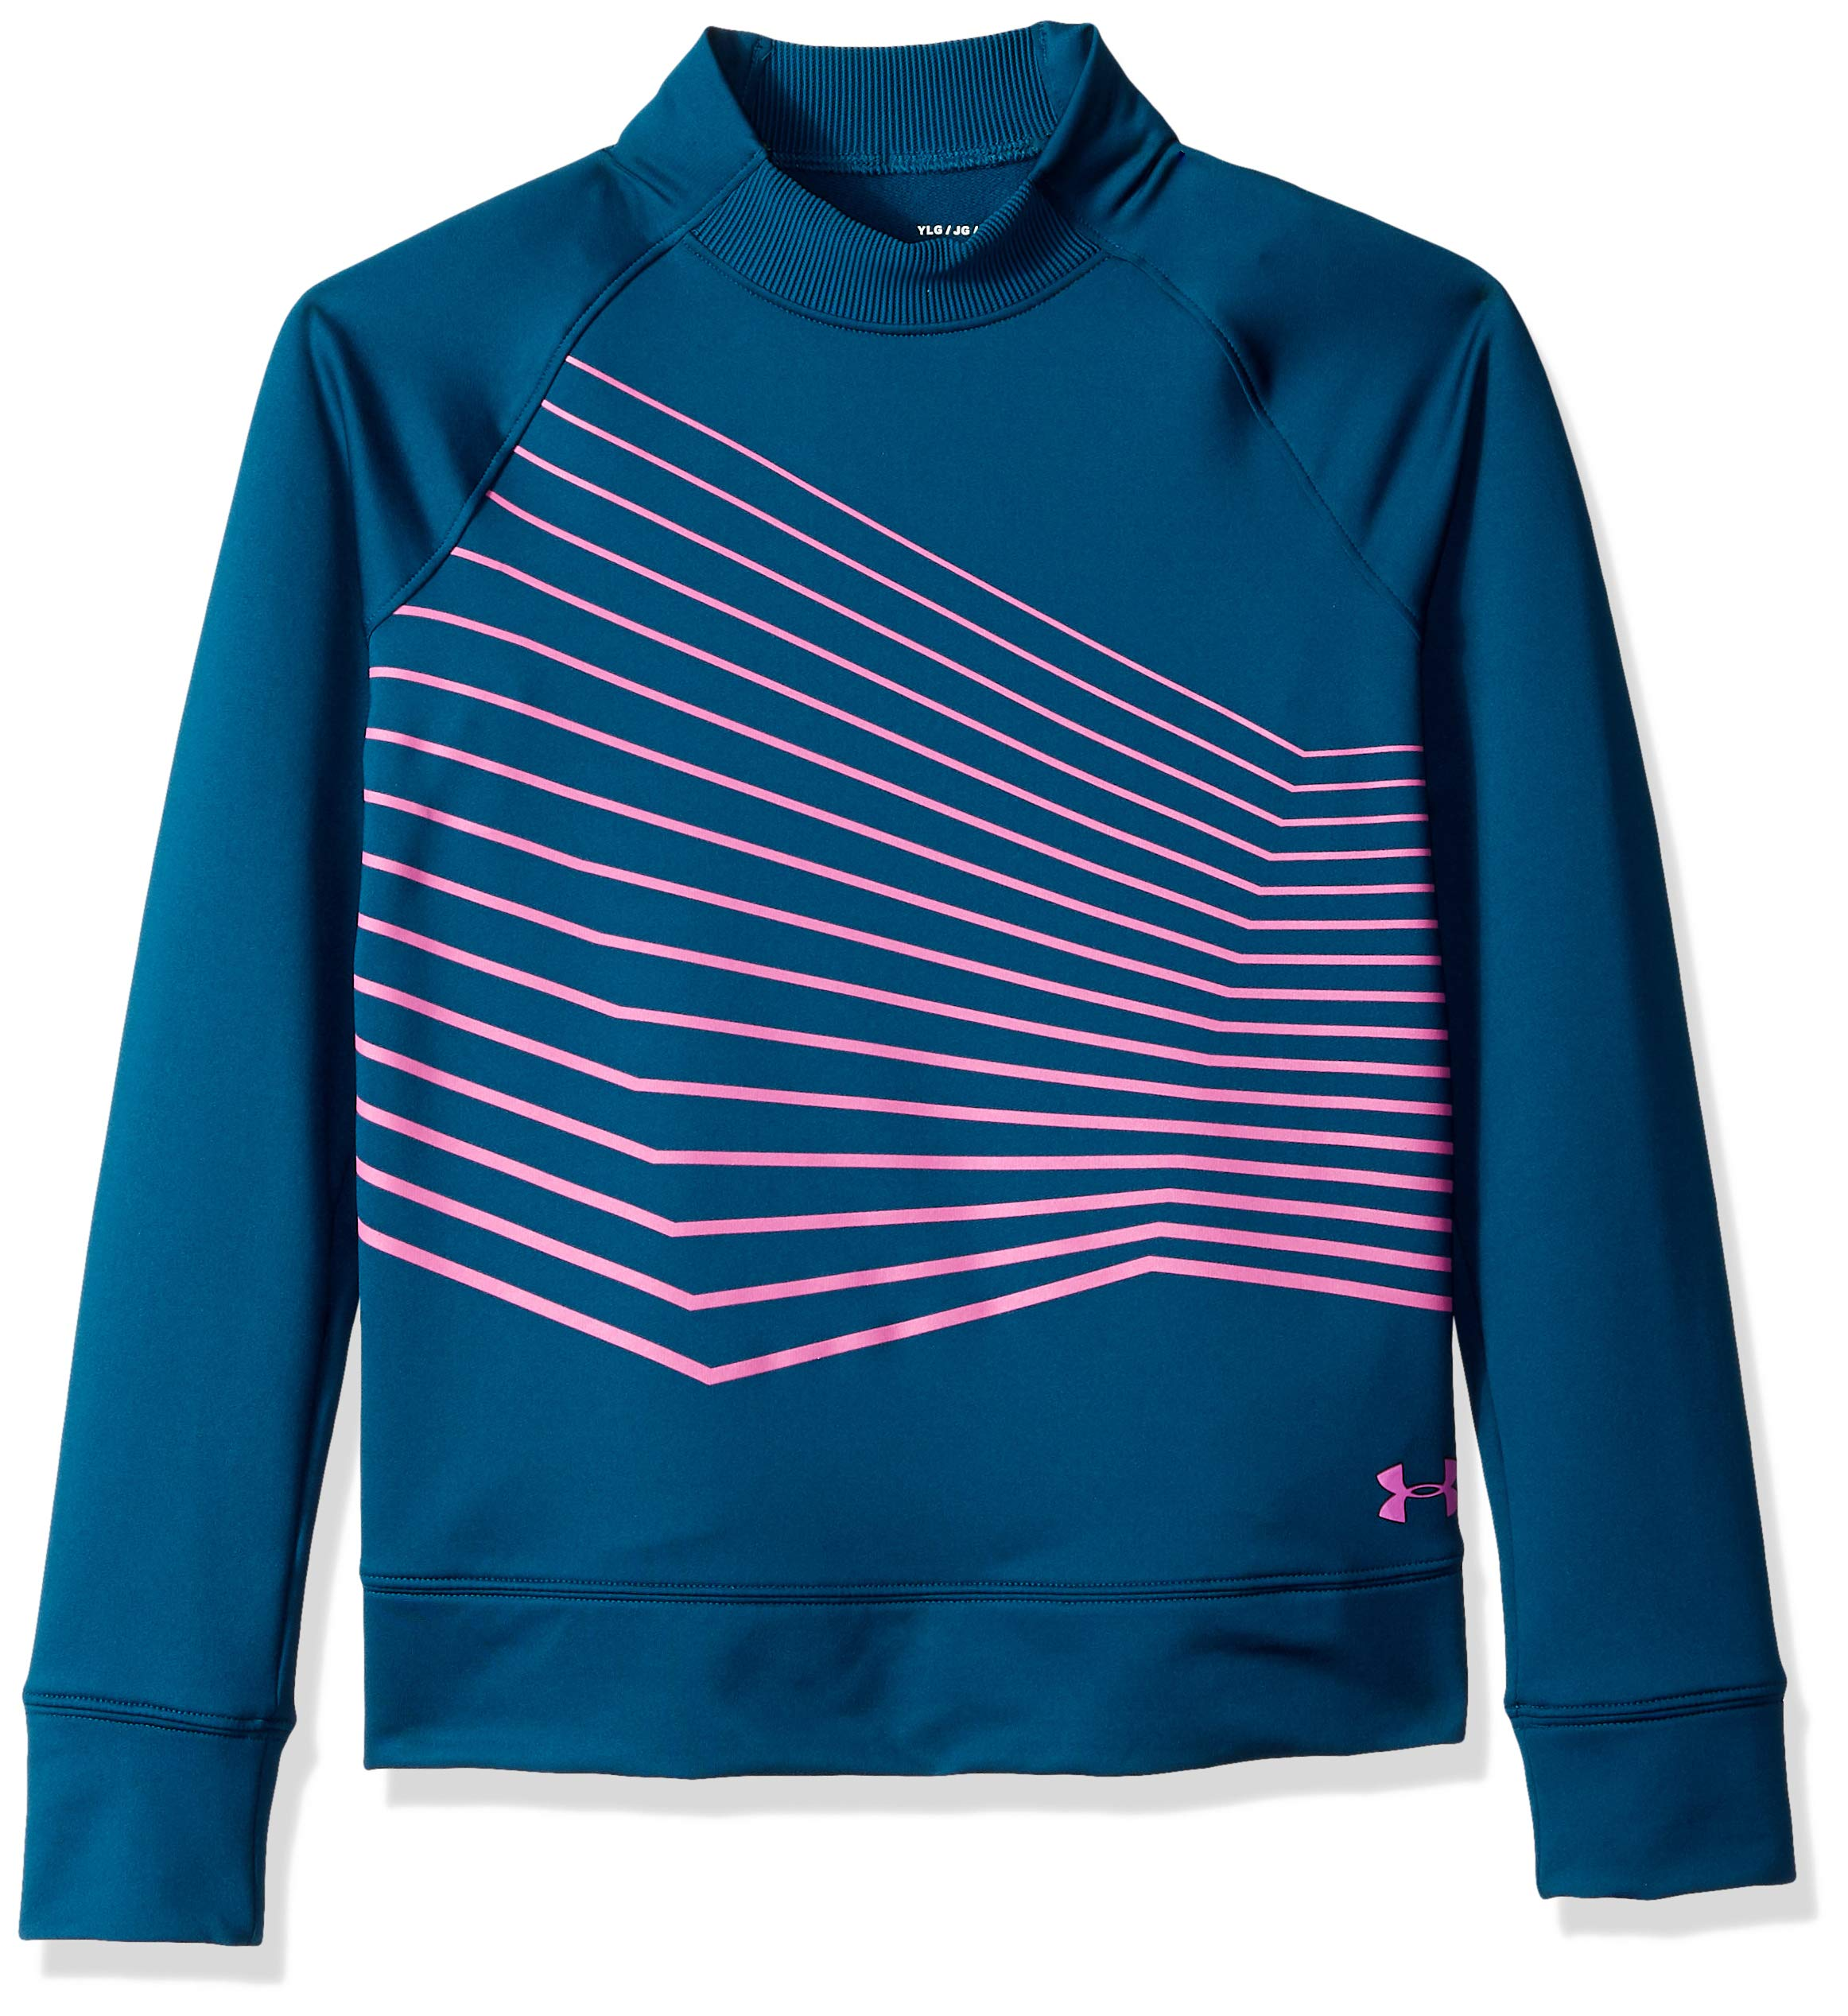 Under Armour Girls Coldgear Mock Long sleeve Sweatshirt, Techno Teal (489)/Fluo Fuchsia, Youth Large by Under Armour